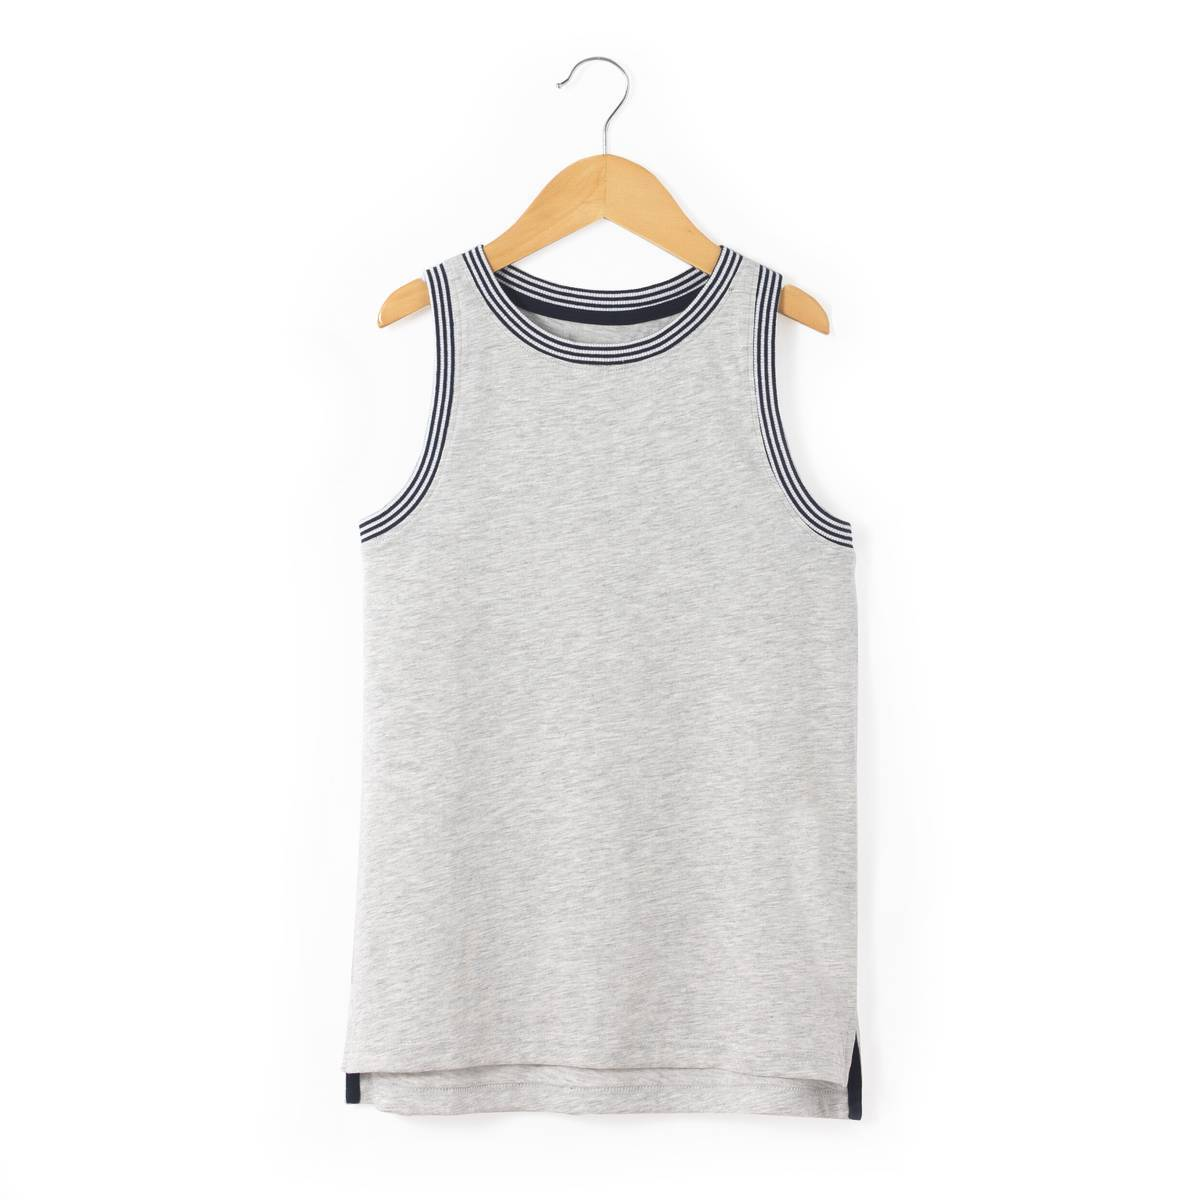 La Redoute Collections Camiseta lisa sin mangas 10-16 años gris